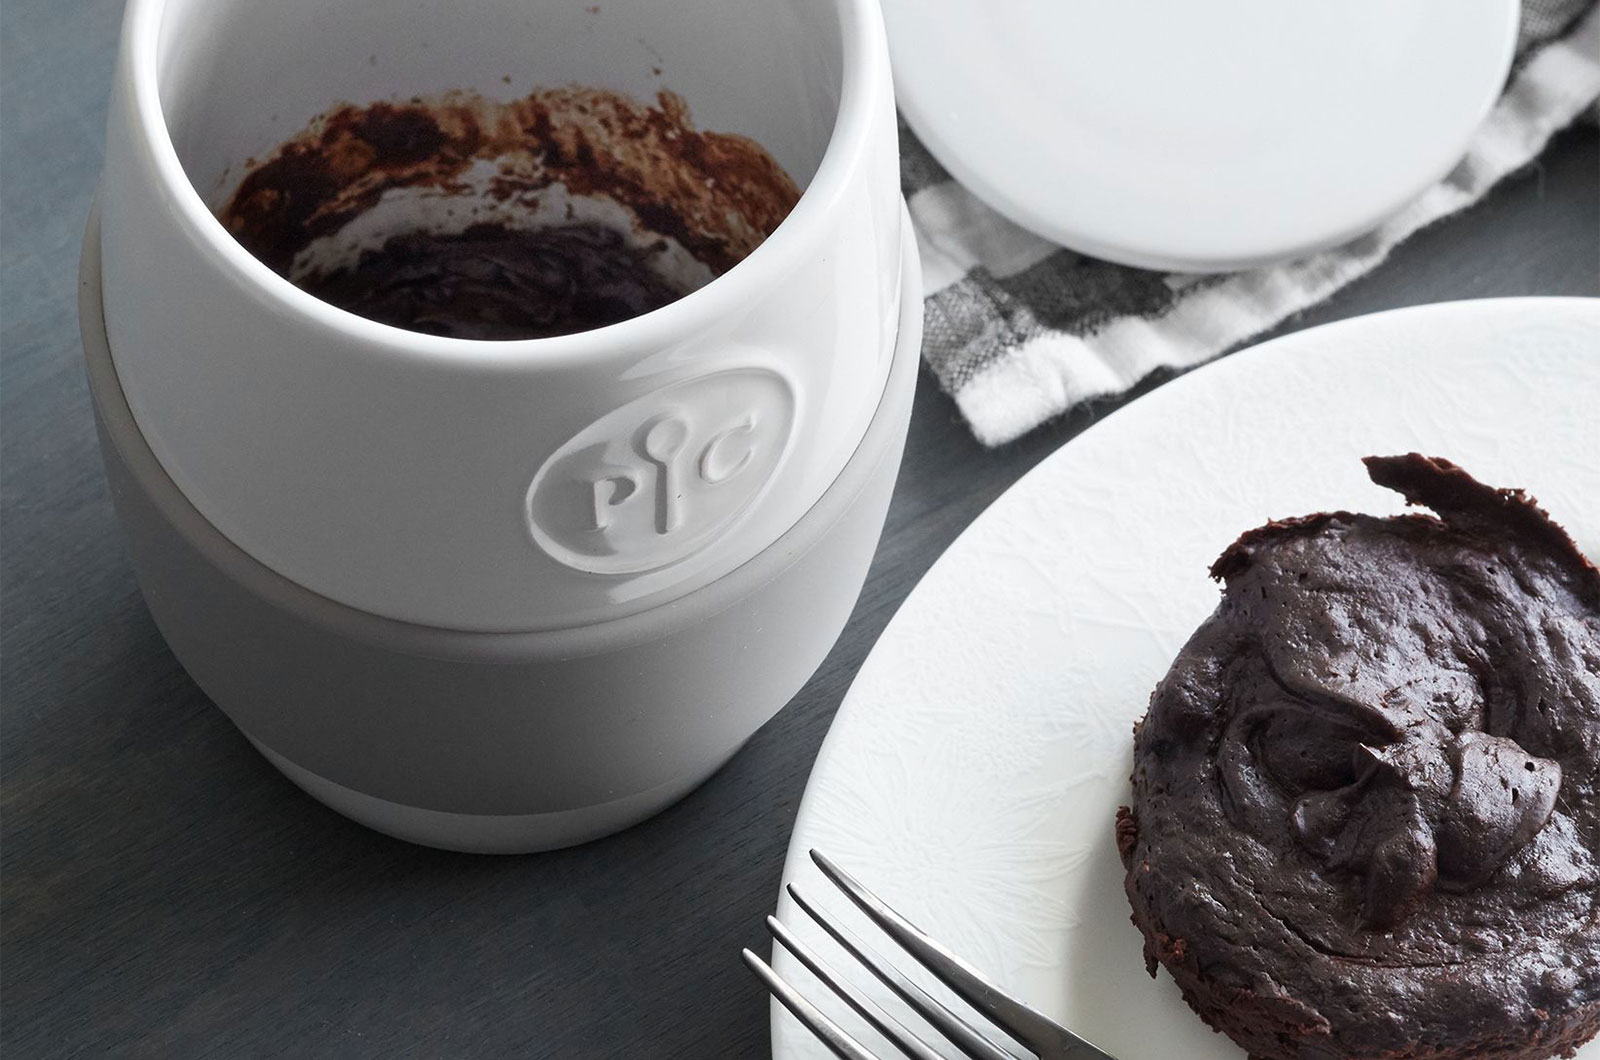 How To Make A Mug Cake Without Eggs